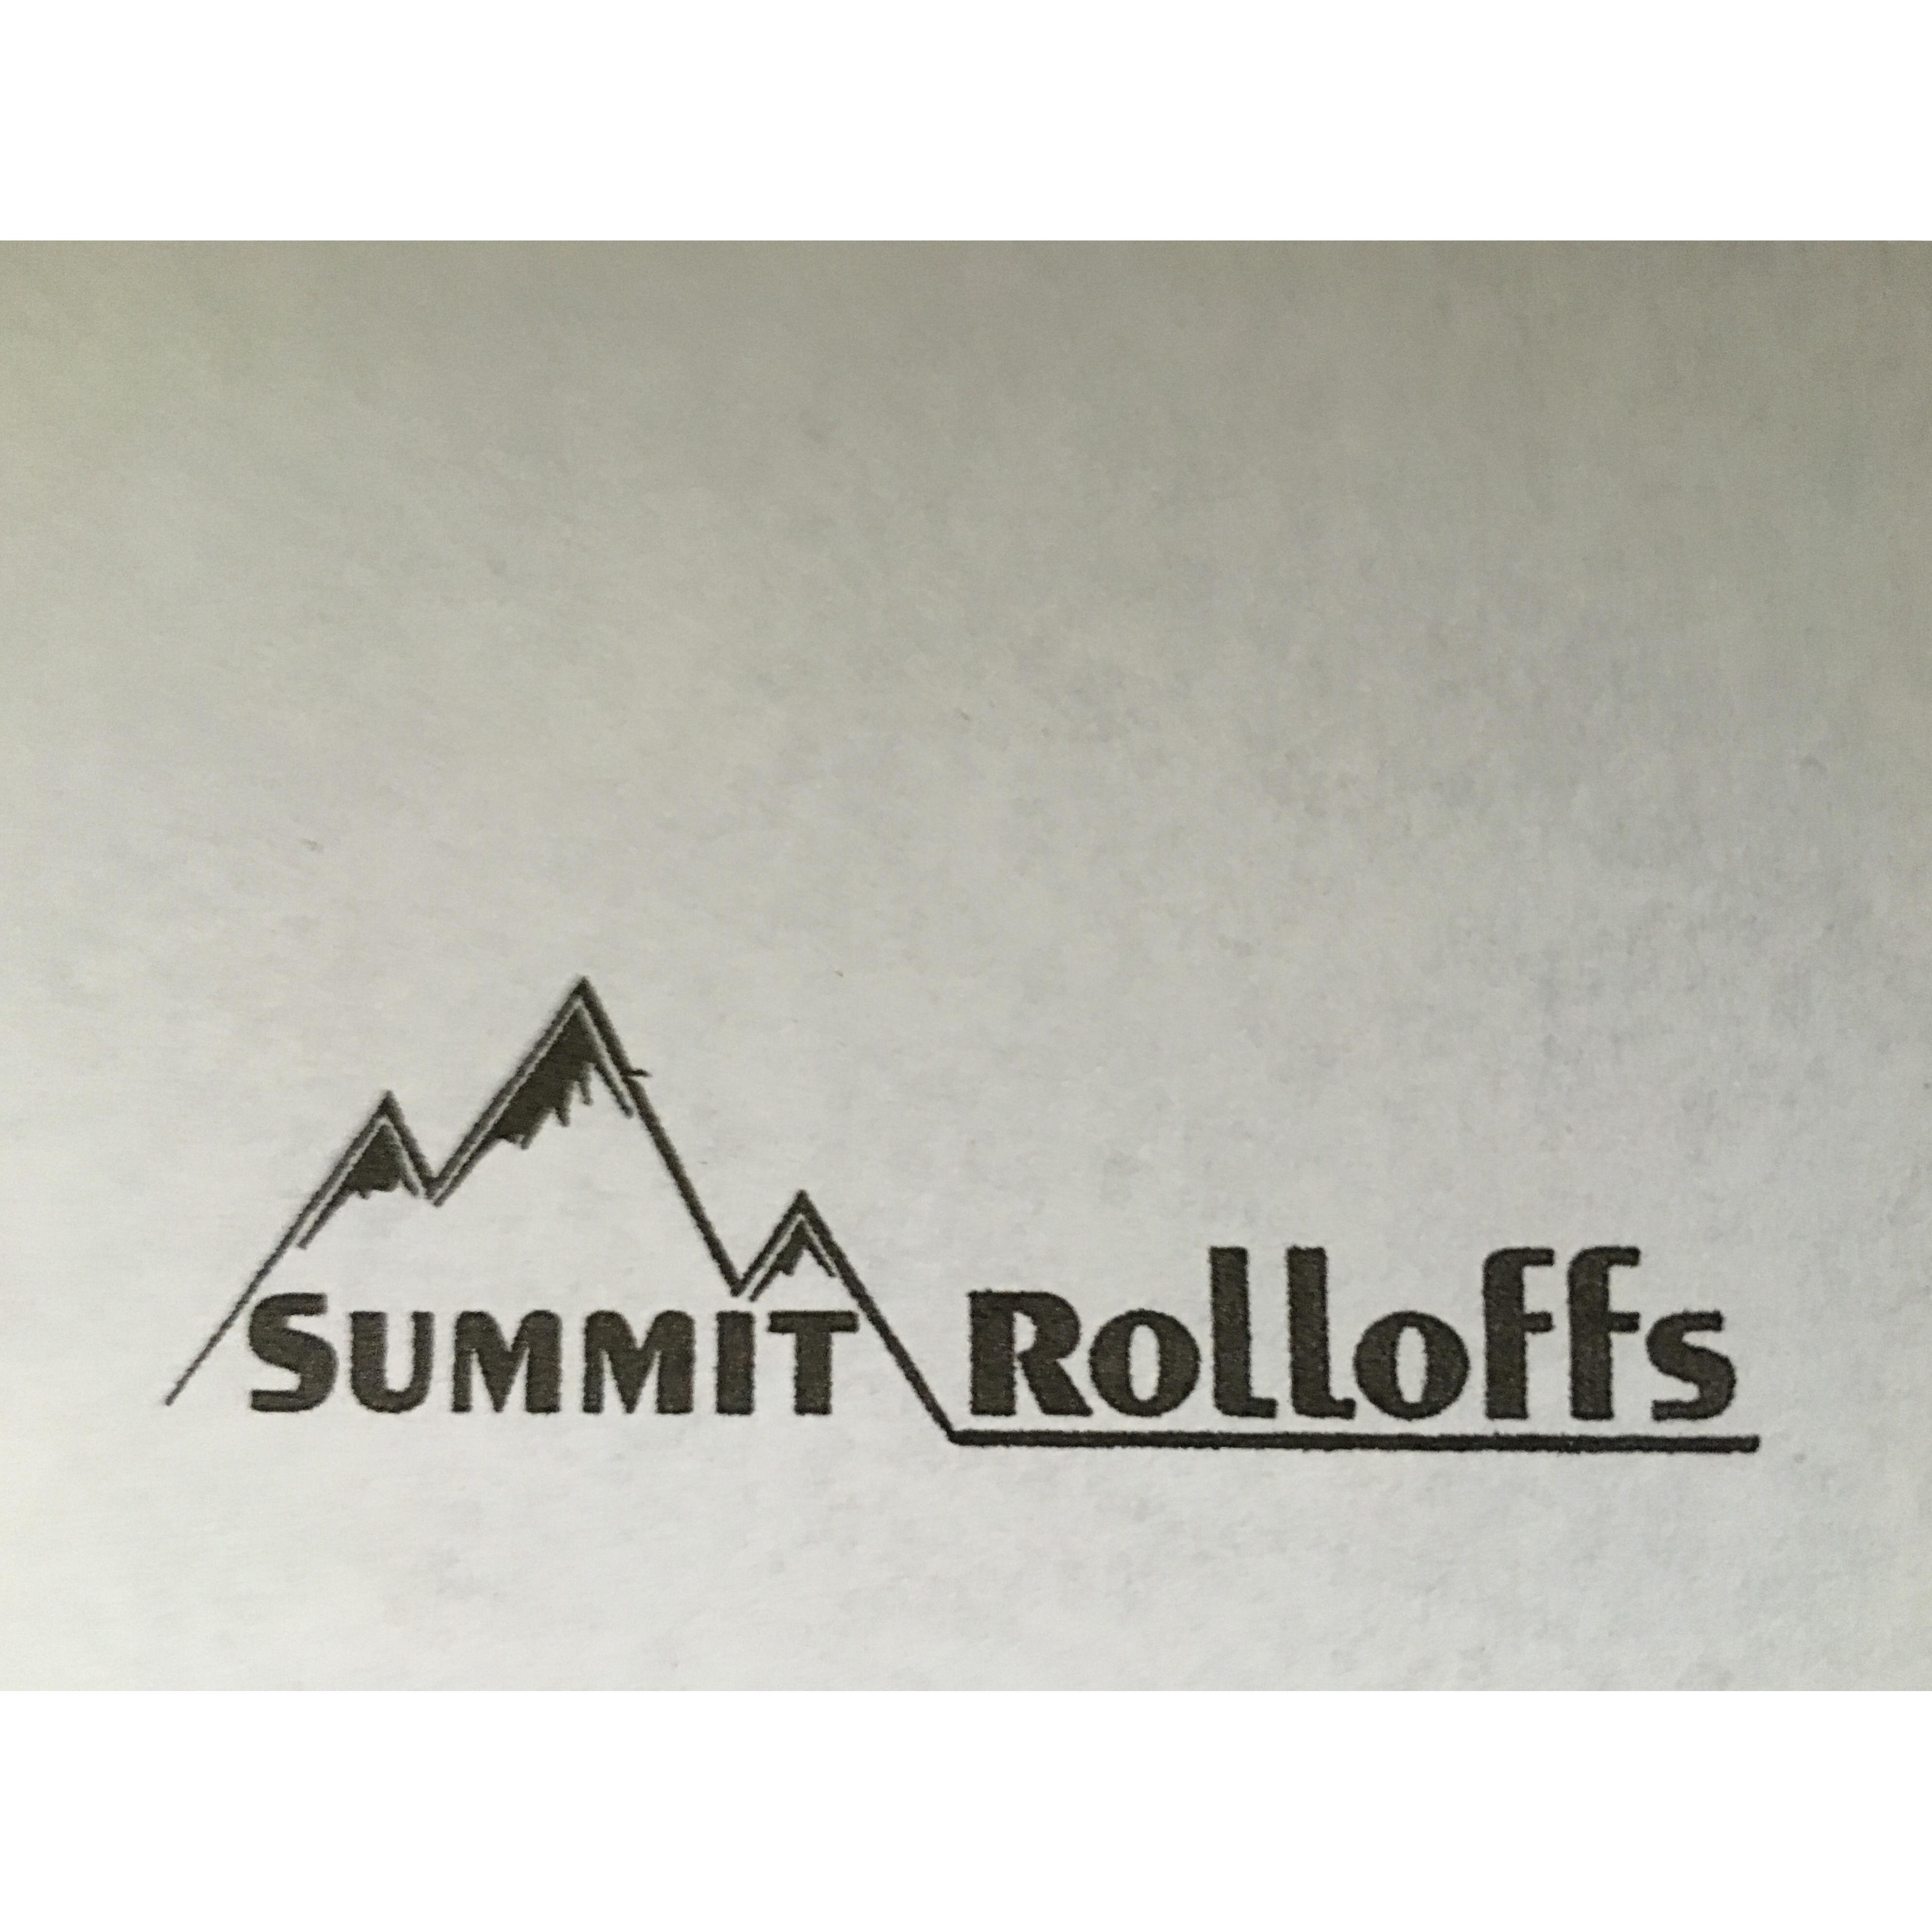 Summit roll-offs